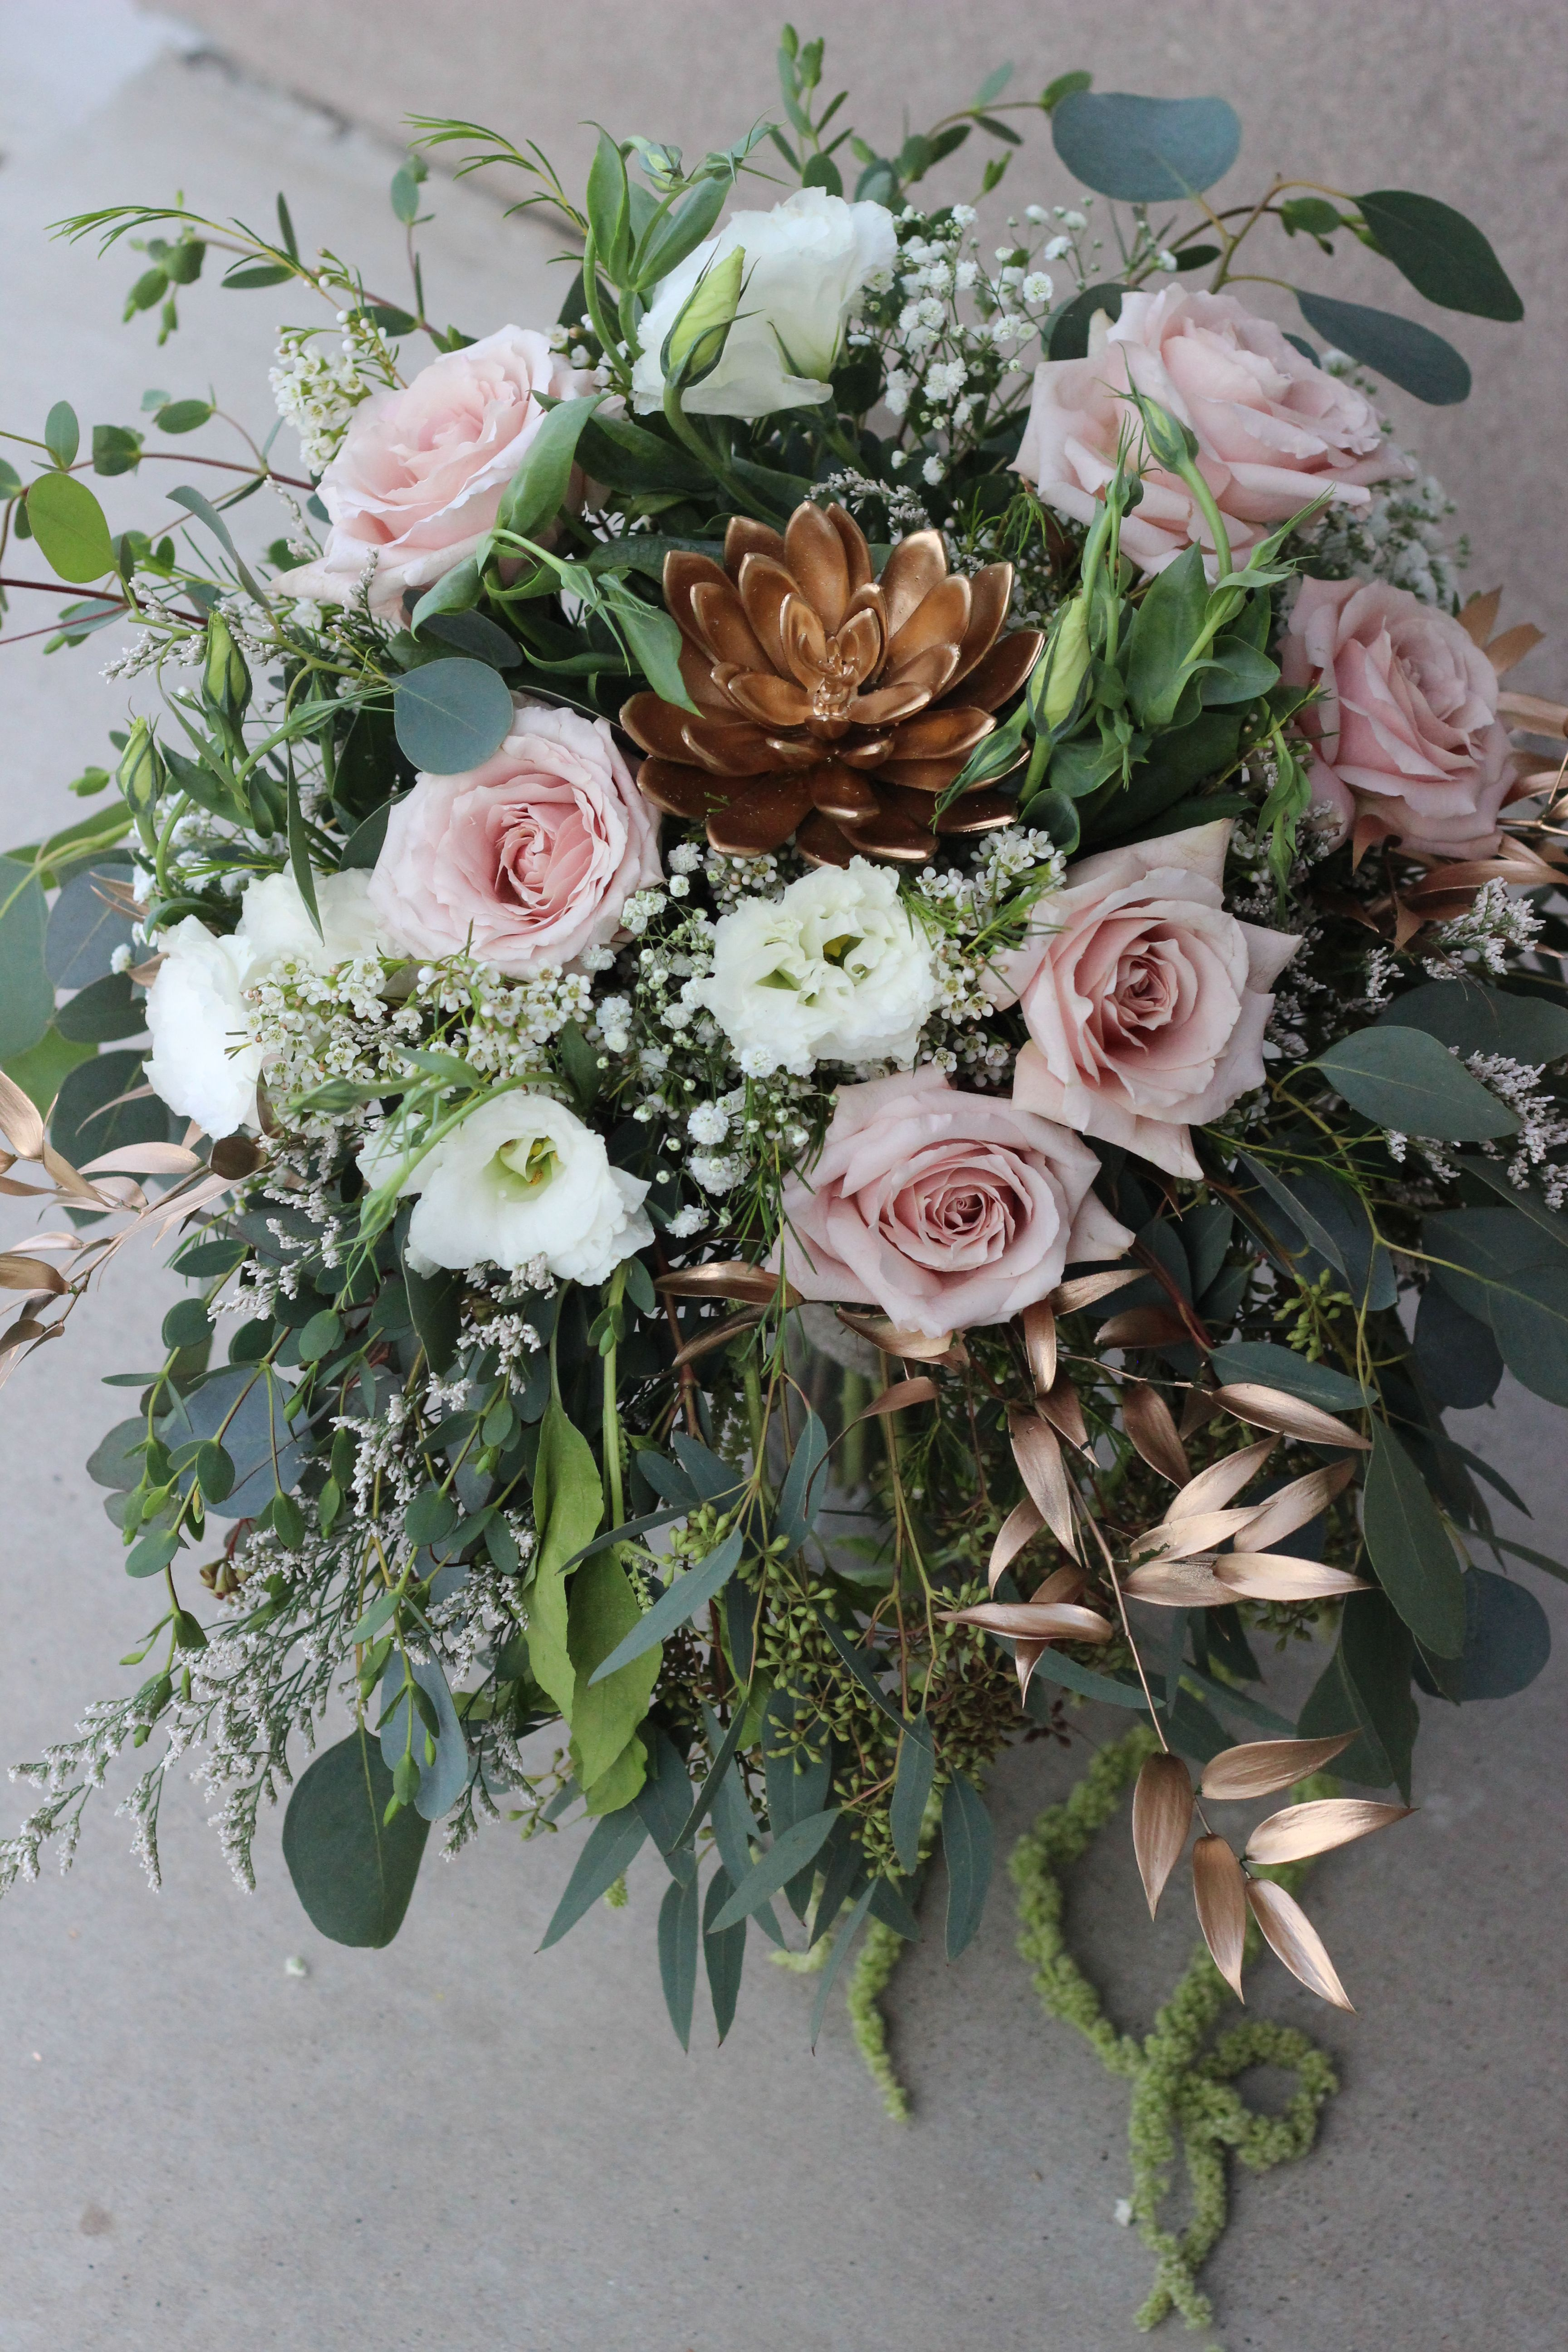 Bridal Bouquet Quicksand Roses White Lisianthus Gold Tinted Succulent Gold Tinted Italian Ruscus Eucalyptus Wa Wax Flowers Wedding Flowers Bridal Bouquet